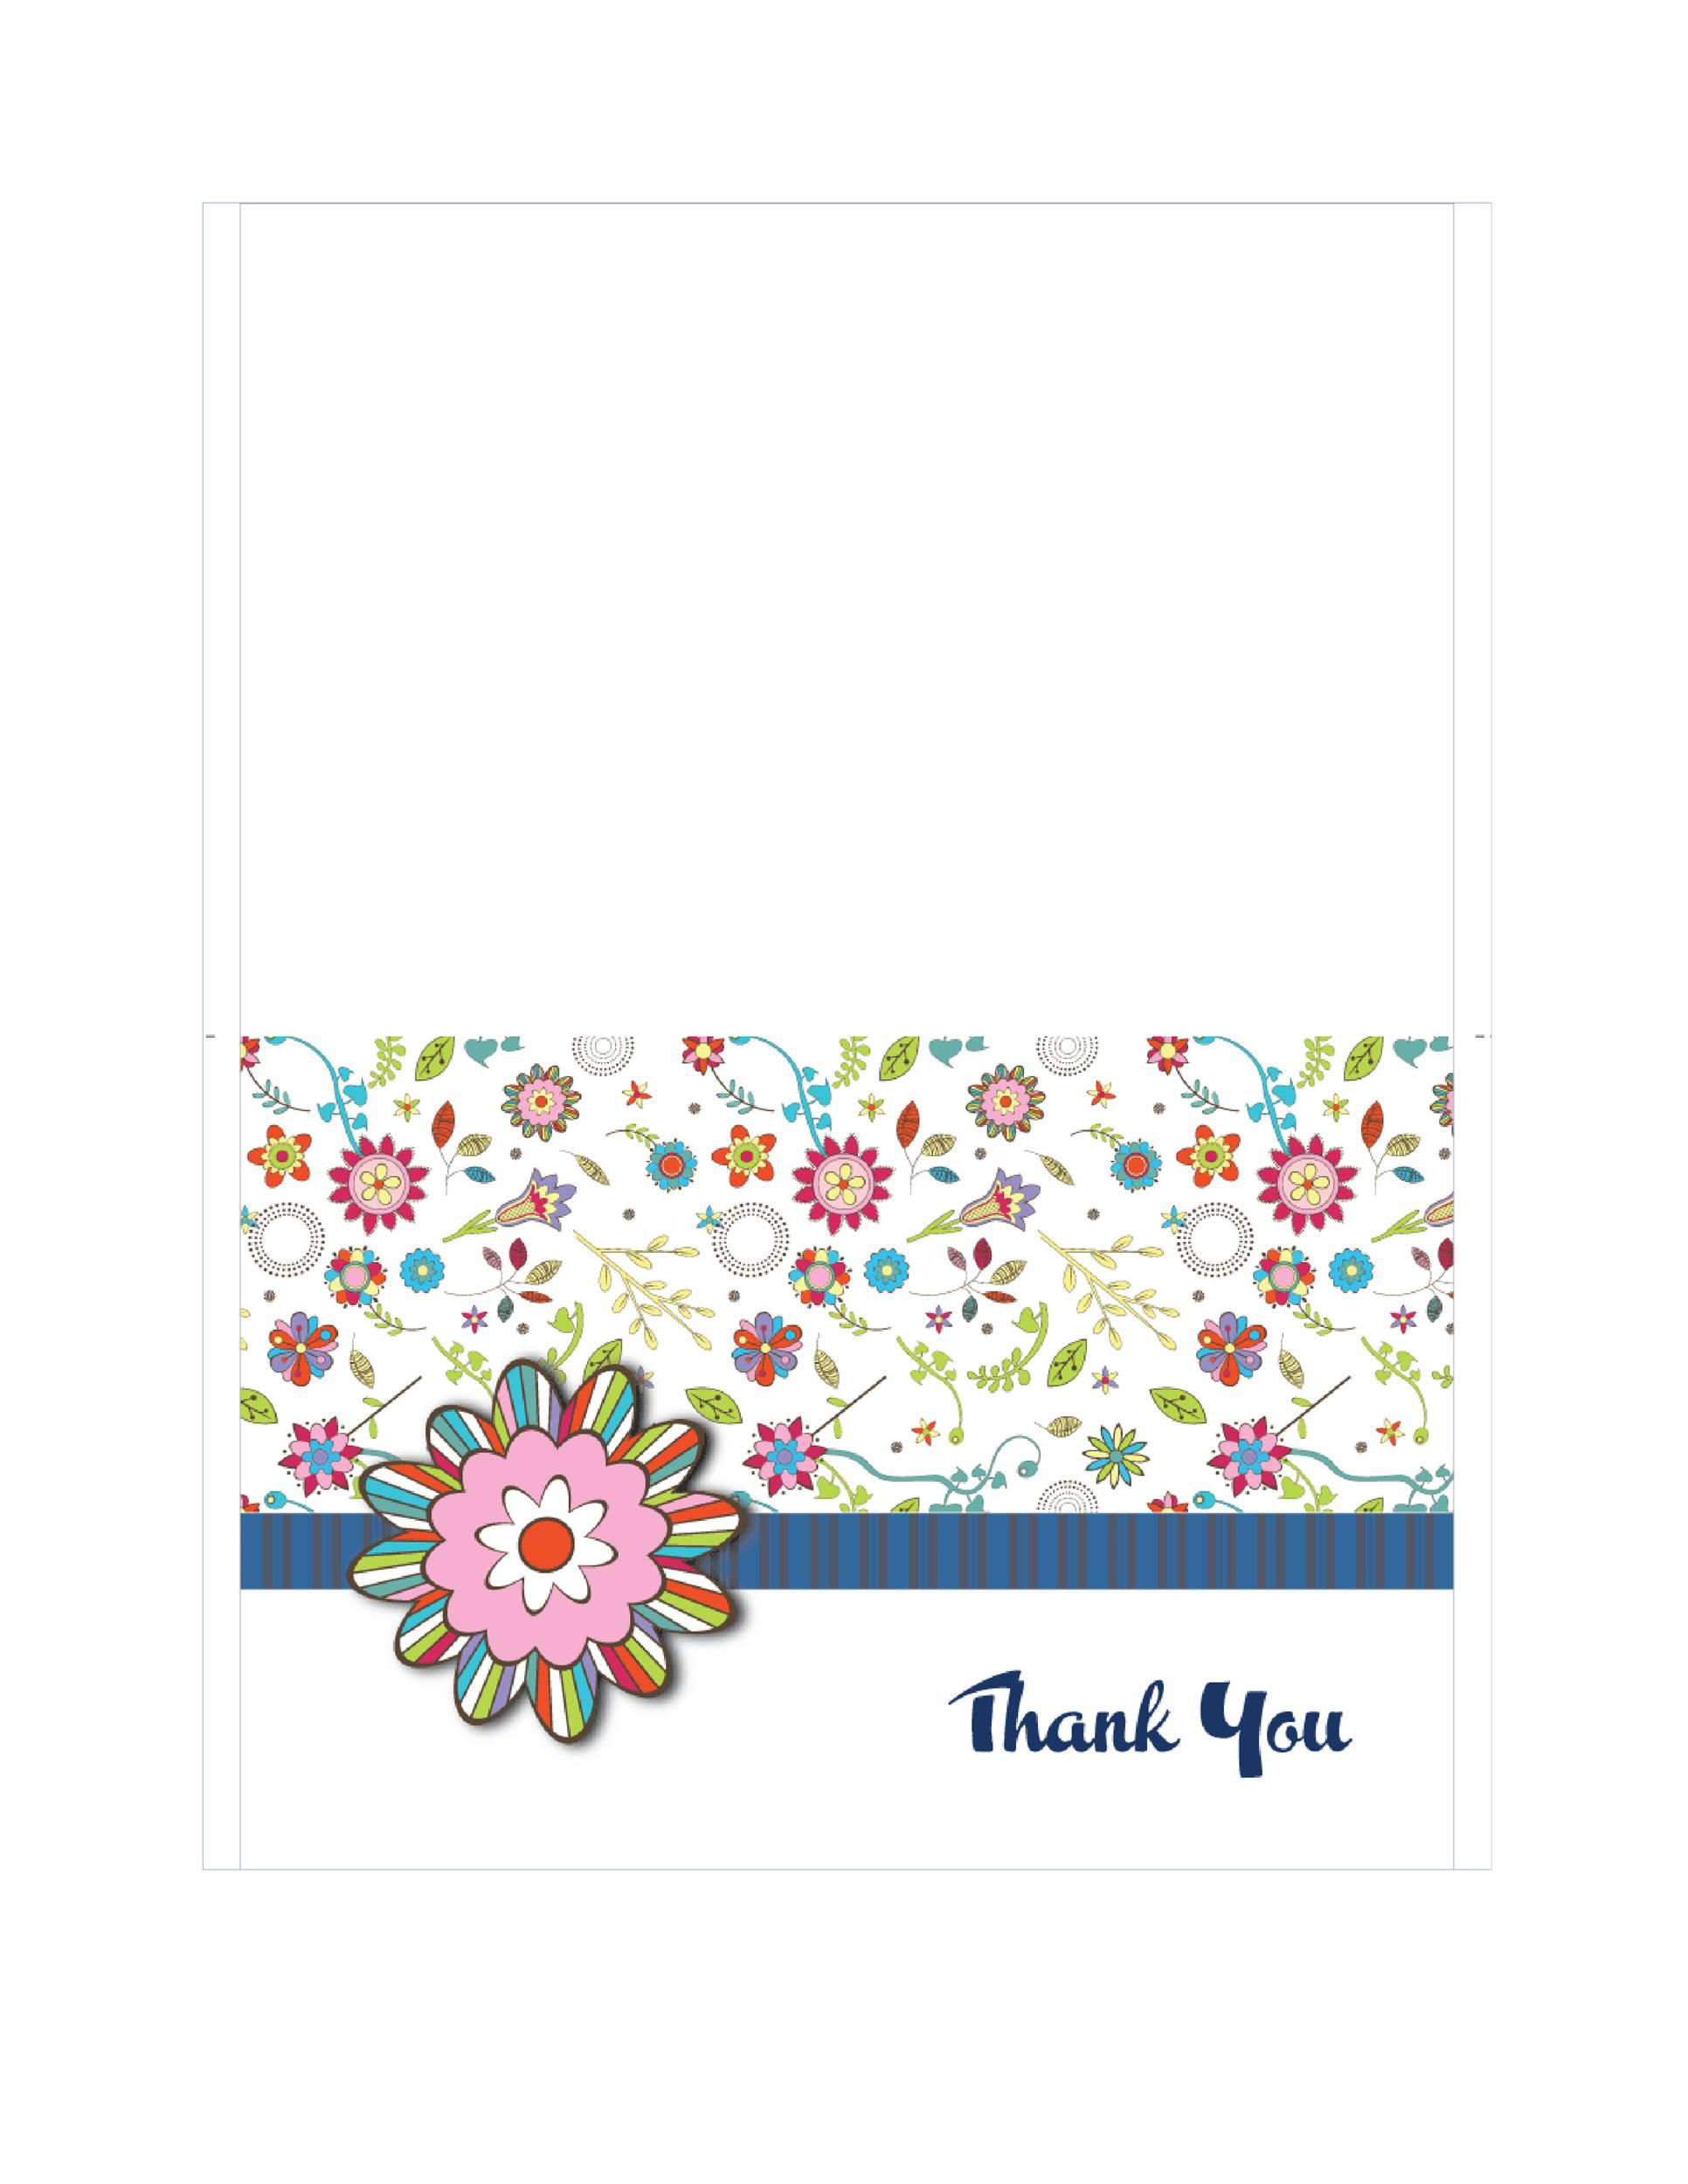 008 Amazing Free Thank You Card Template Design  Google Doc For Funeral Microsoft WordFull